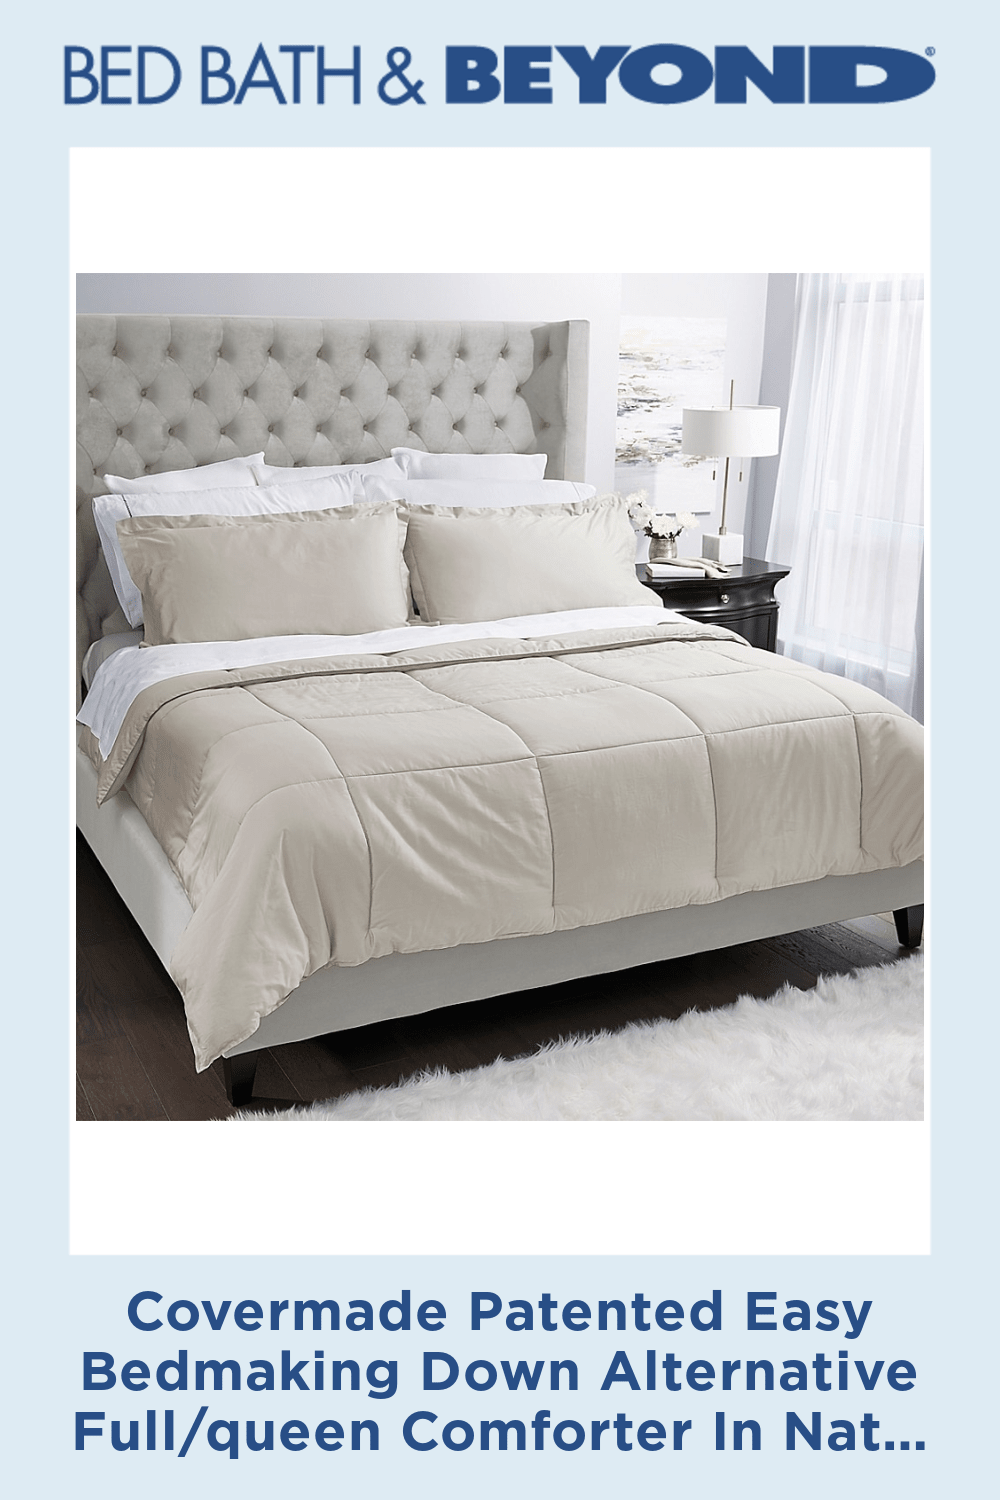 Photo of Covermade Patented Easy Bedmaking Down Alternative Full/queen Comforter In Natural